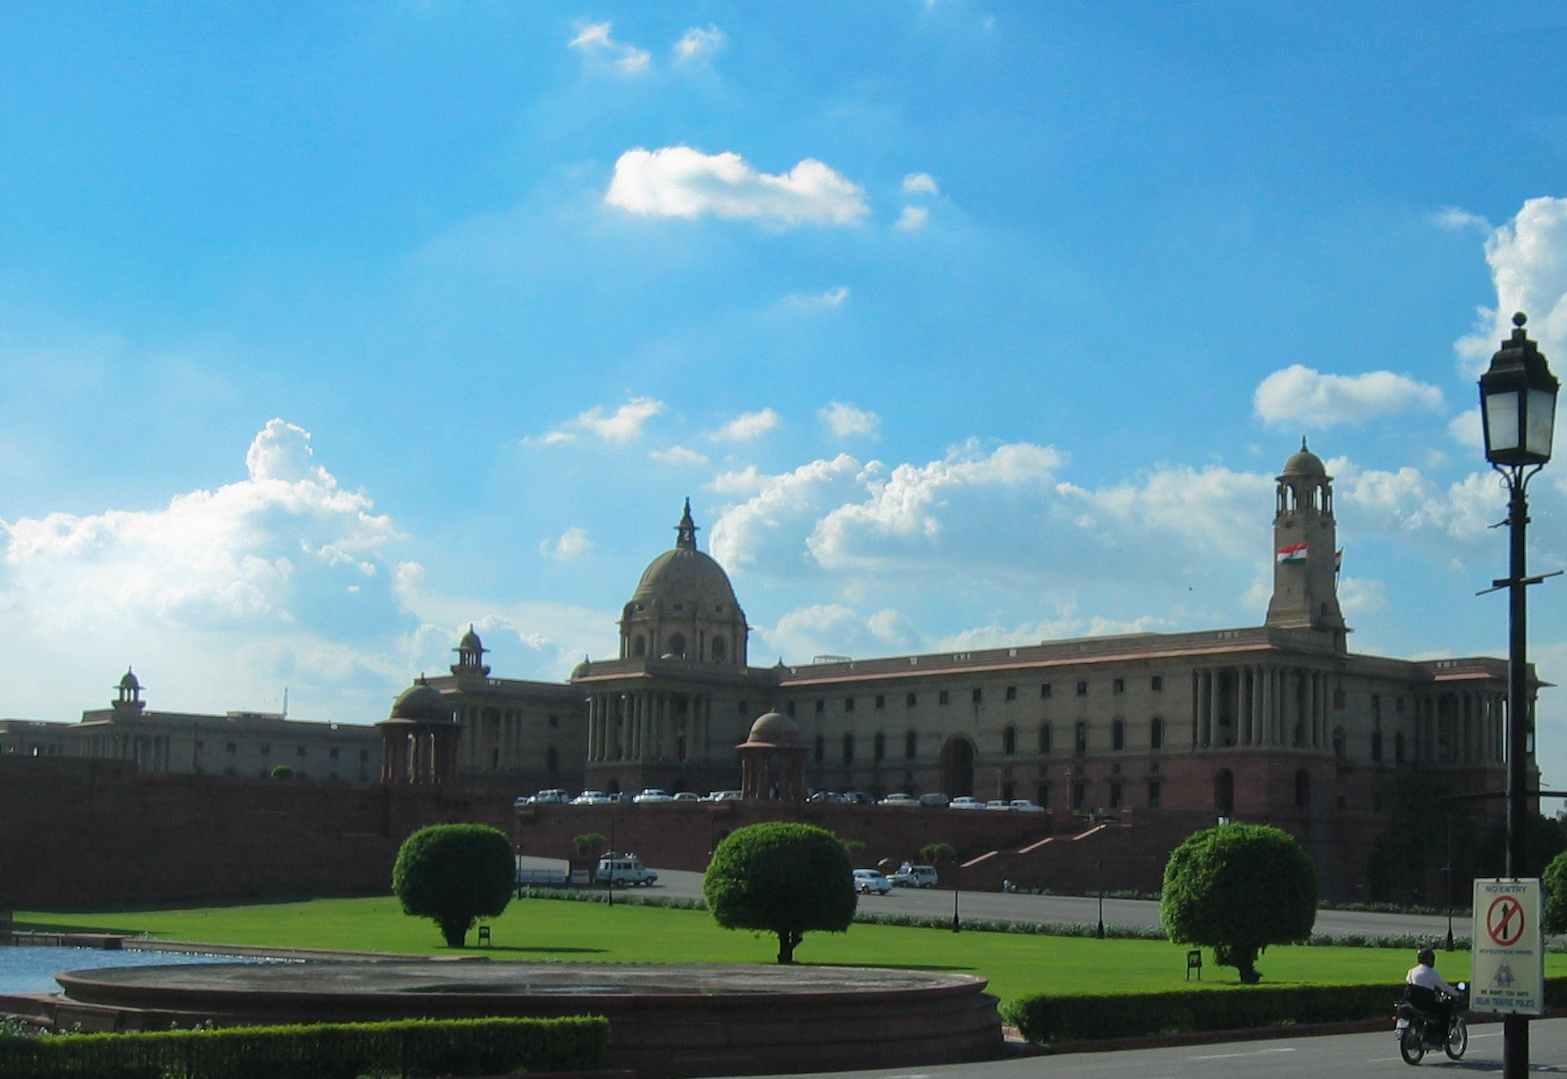 North Block in New Delhi